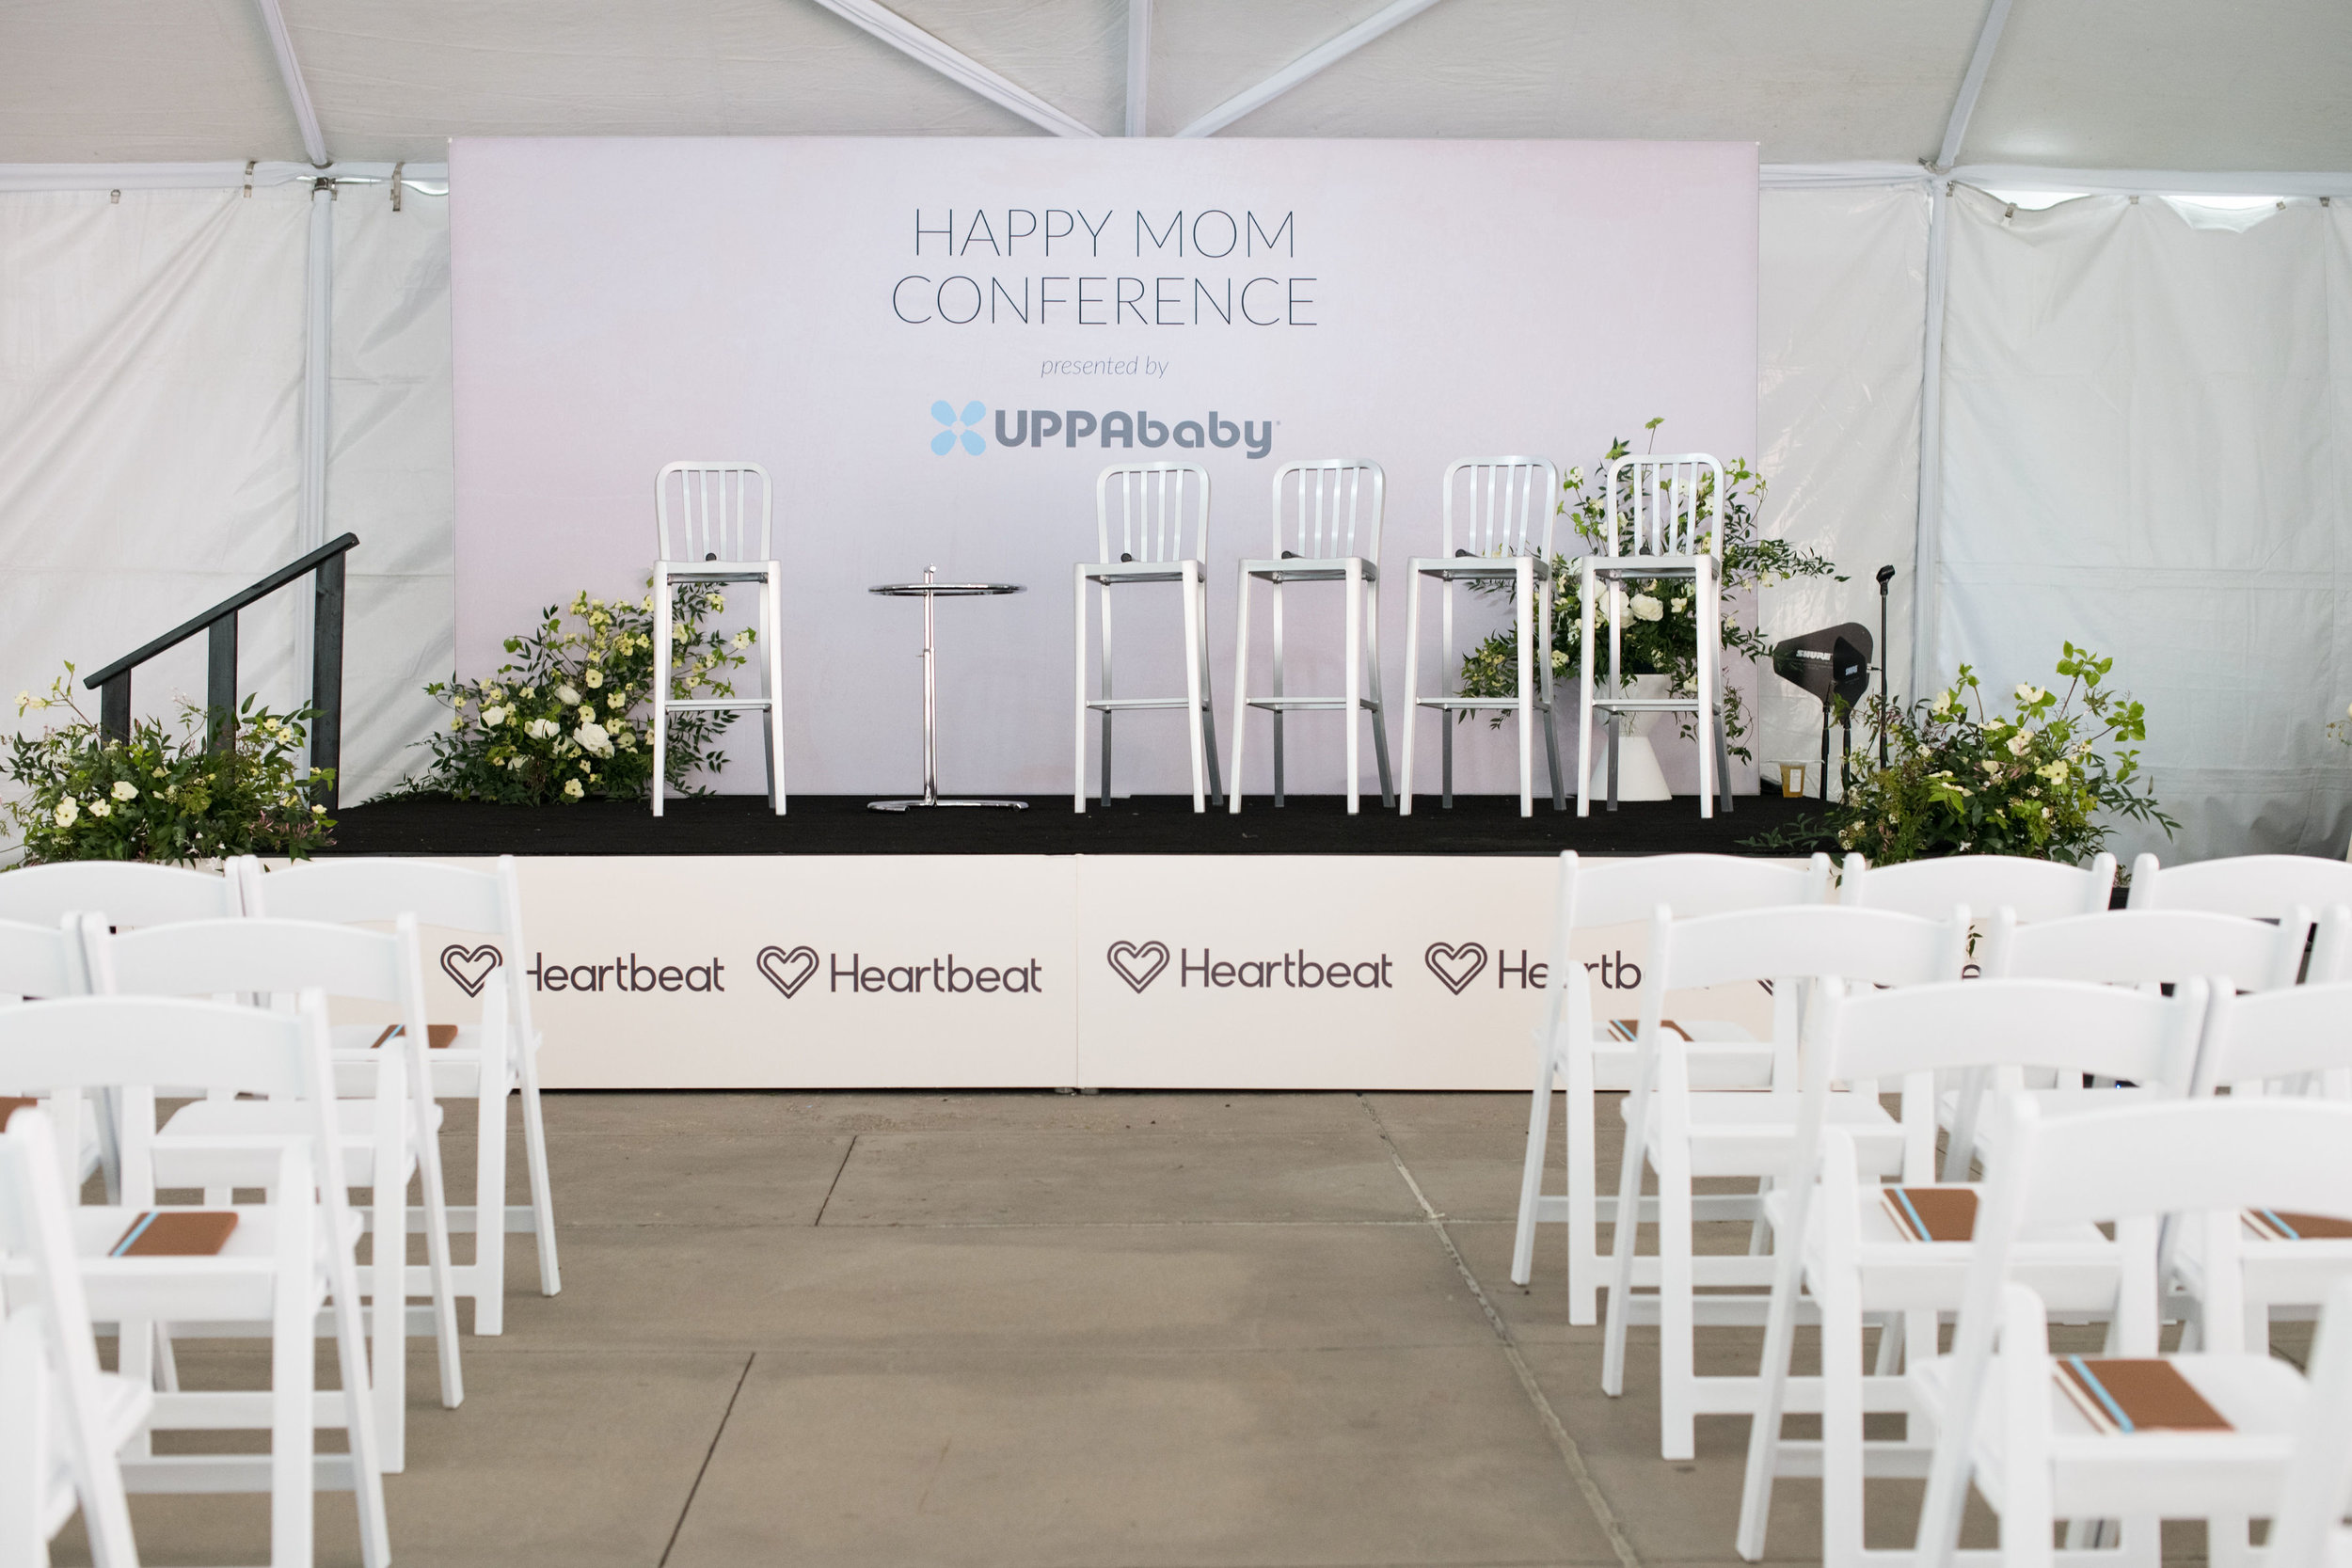 """View of the Happy Mom Conference 2019 stage from the center aisle. White chairs on either side with lovely leather notebooks on the seats are set up for each mama attending, while the Heartbeat sponsored stage is set with seats for panelists, minimalist white floral arrangements, and a """"Happy Mom Conference presented by UPPAbaby"""" backdrop."""